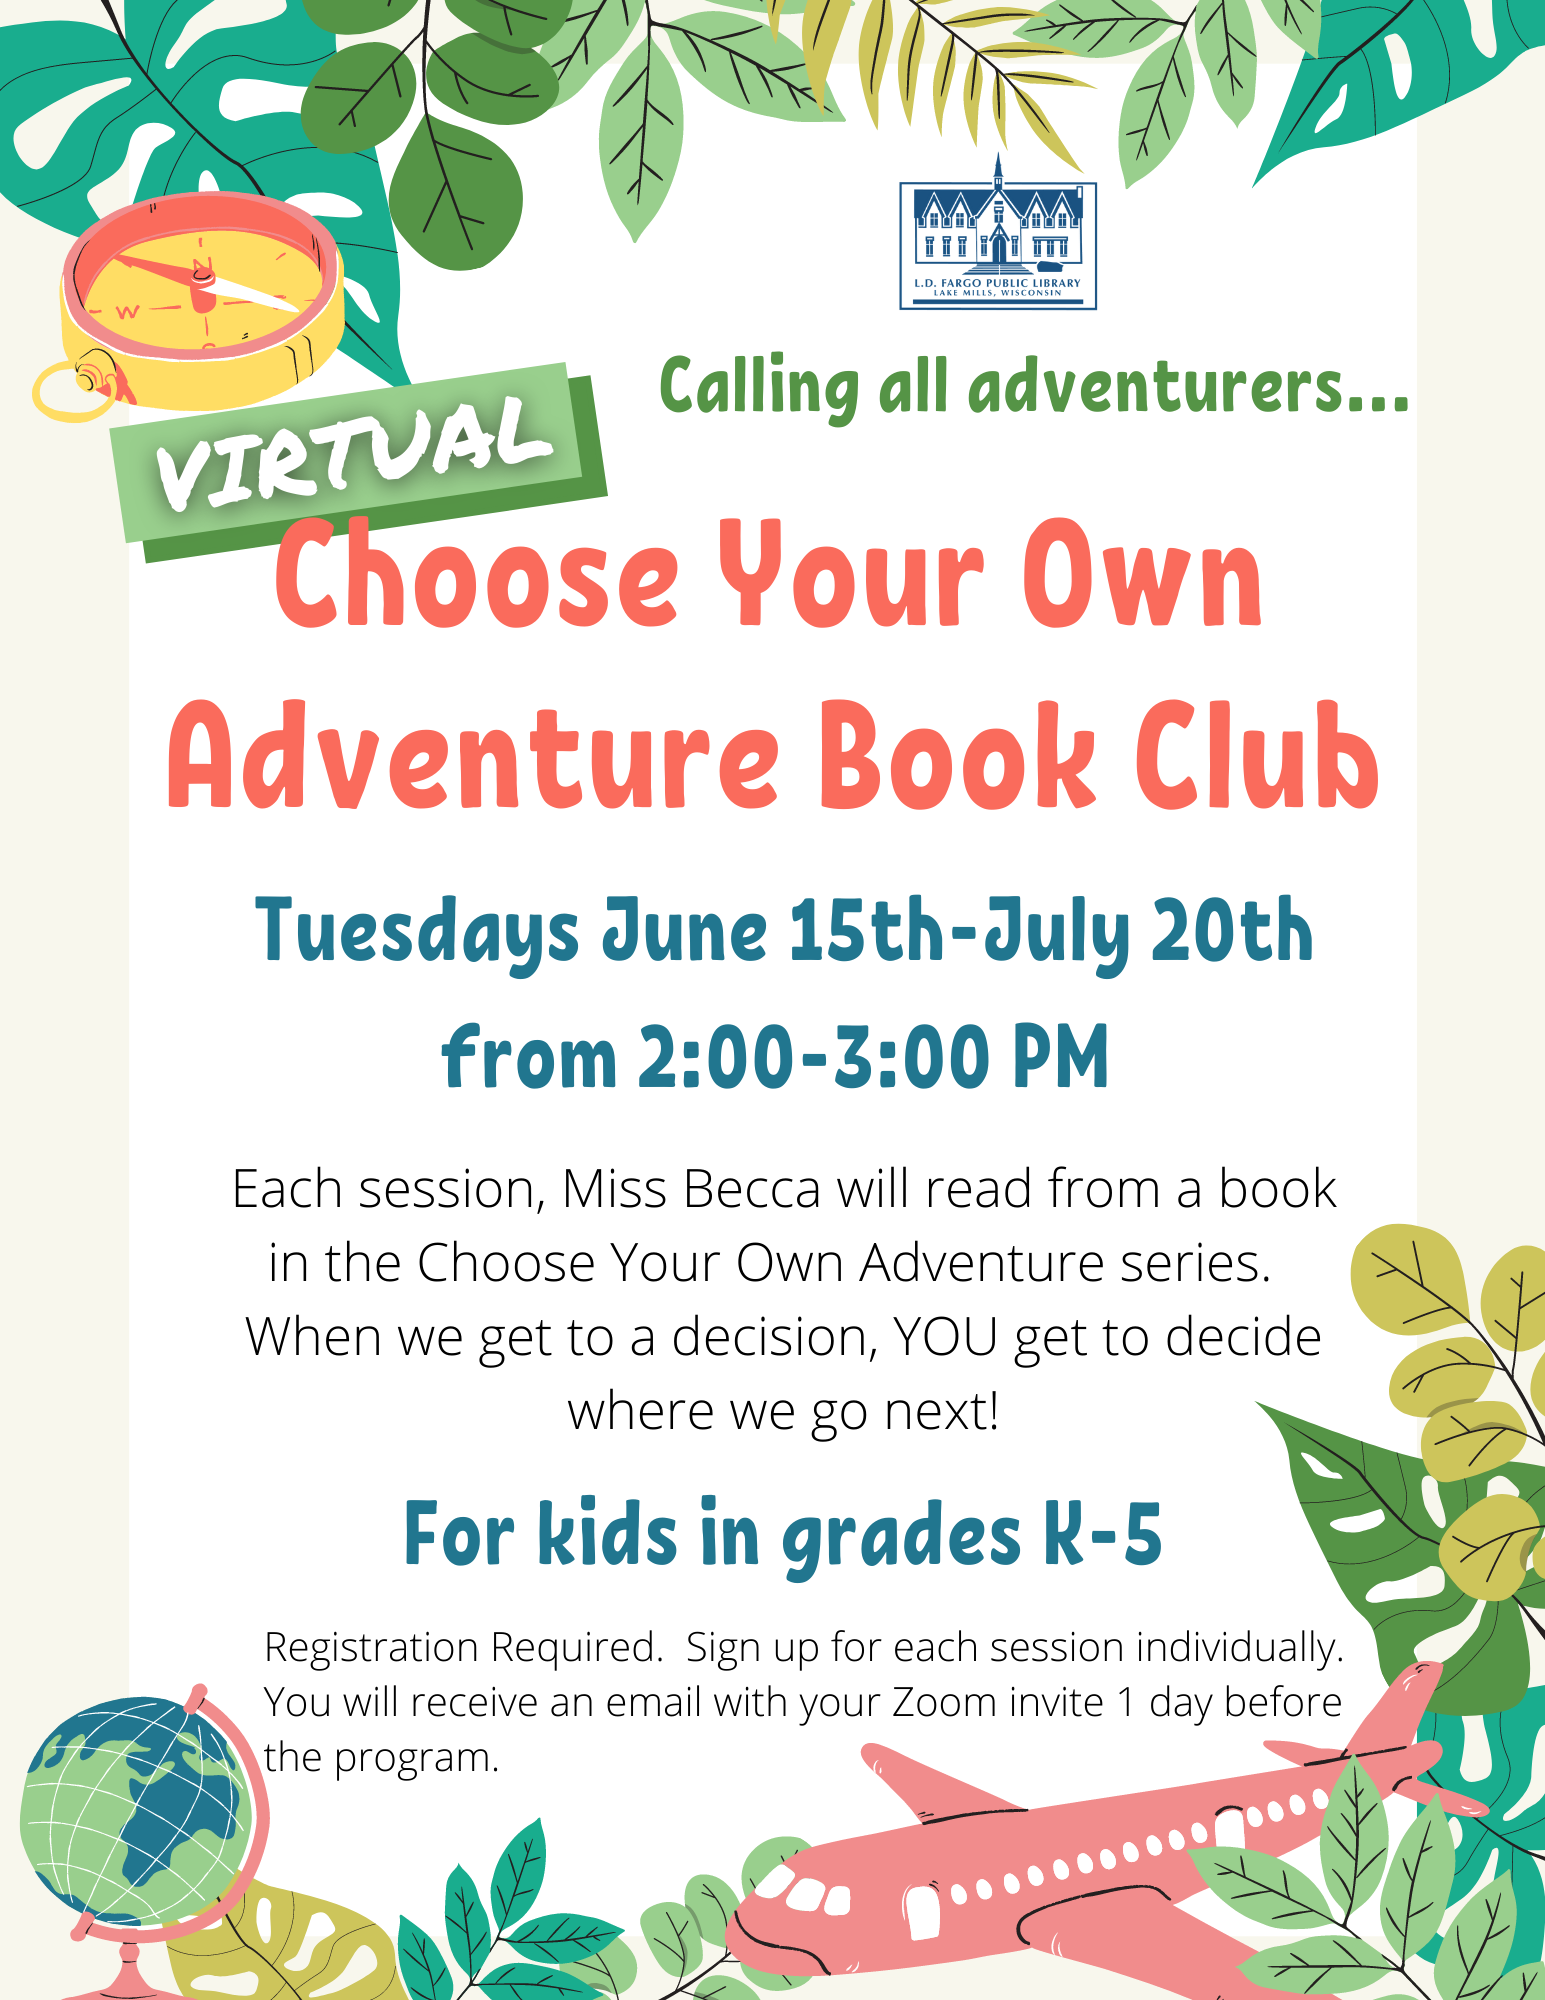 Choose Your Own Adventure Book Club.  Tuesdays June 15th-July 20th from 2:00-3:00 PM. Each session, Miss Becca will read from a book in the Choose Your Own Adventure series.  When we get to a decision, YOU get to decide where we go next! For kids in grades K-5.